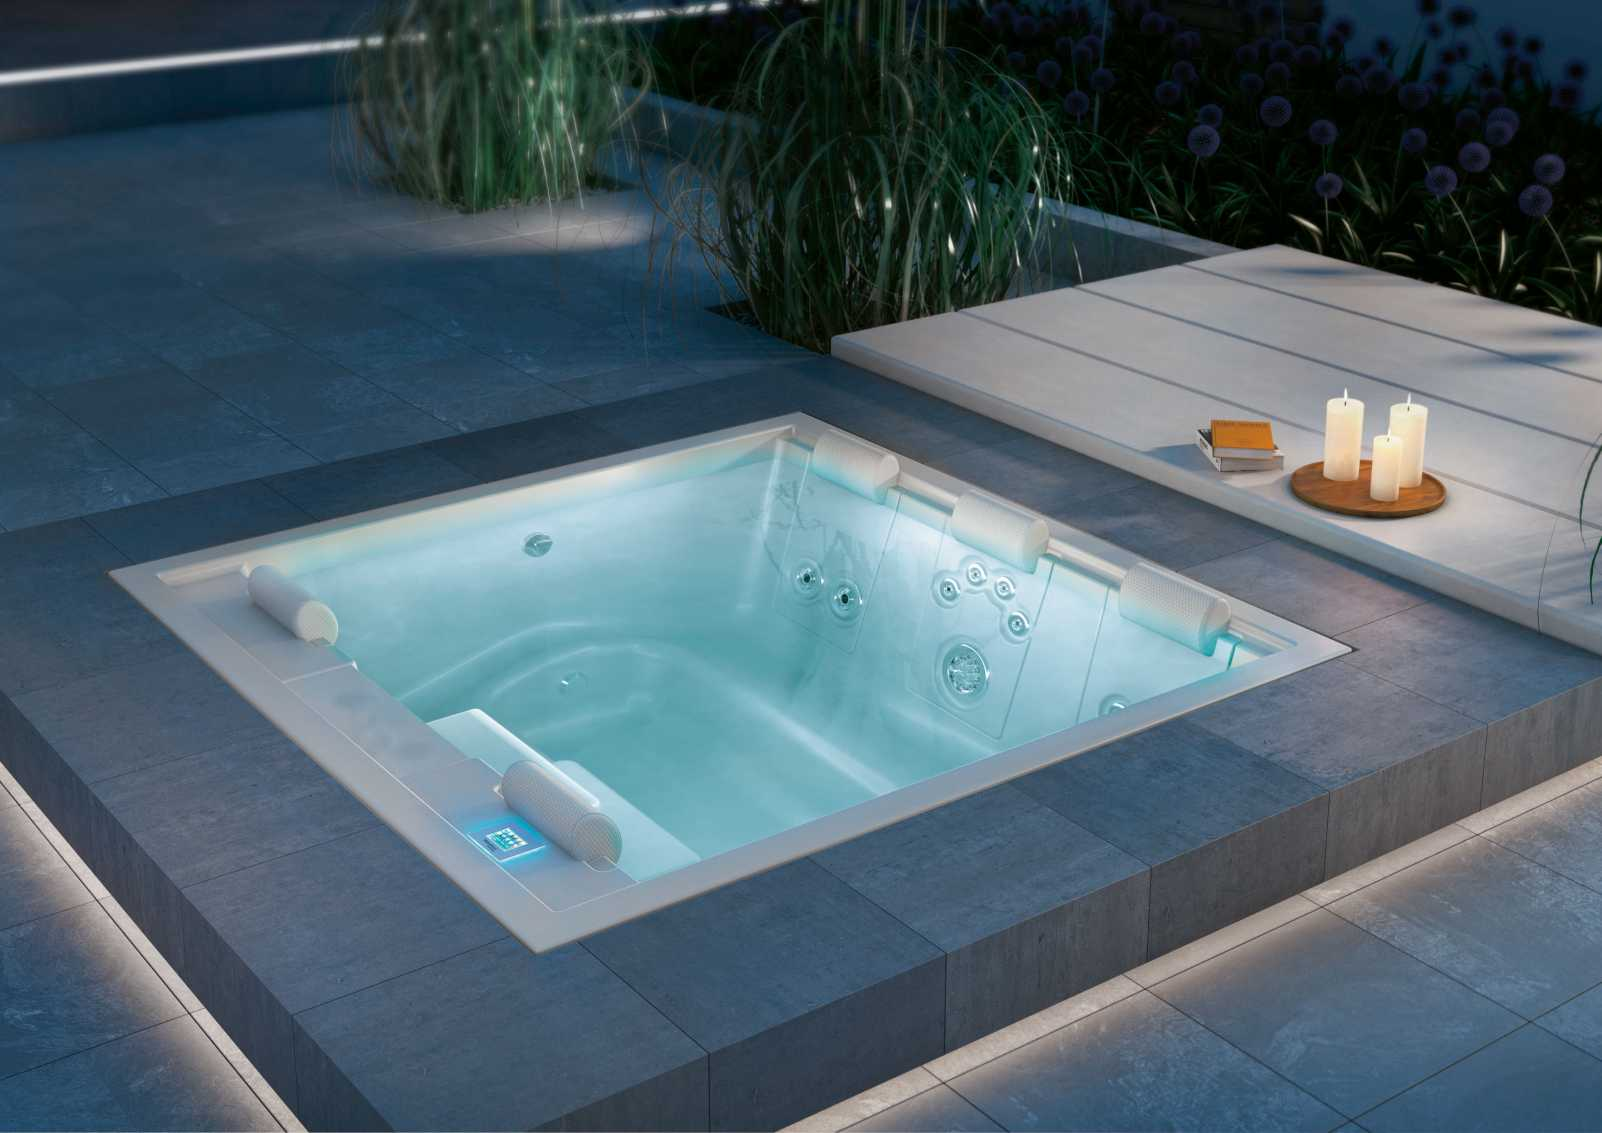 outdoor whirlpool tubs whirlpool loopele com intex whirlpool outdoor pure spa aufblasbar. Black Bedroom Furniture Sets. Home Design Ideas